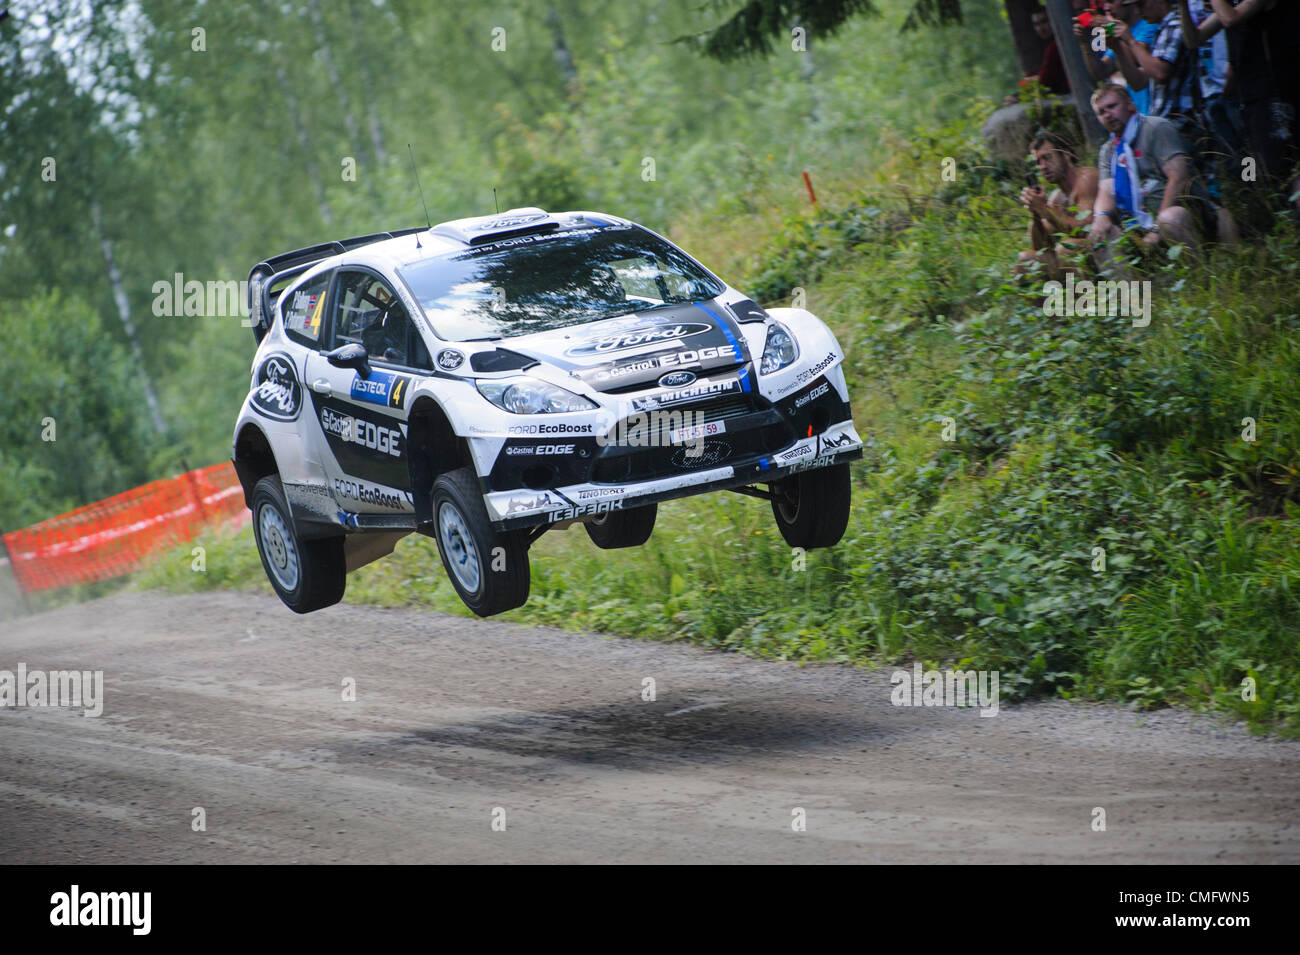 JYVÄSKYLÄ, FINLAND - August 4: Petter Solberg of Norway and Chris Patterson of Great Britain compete in - Stock Image